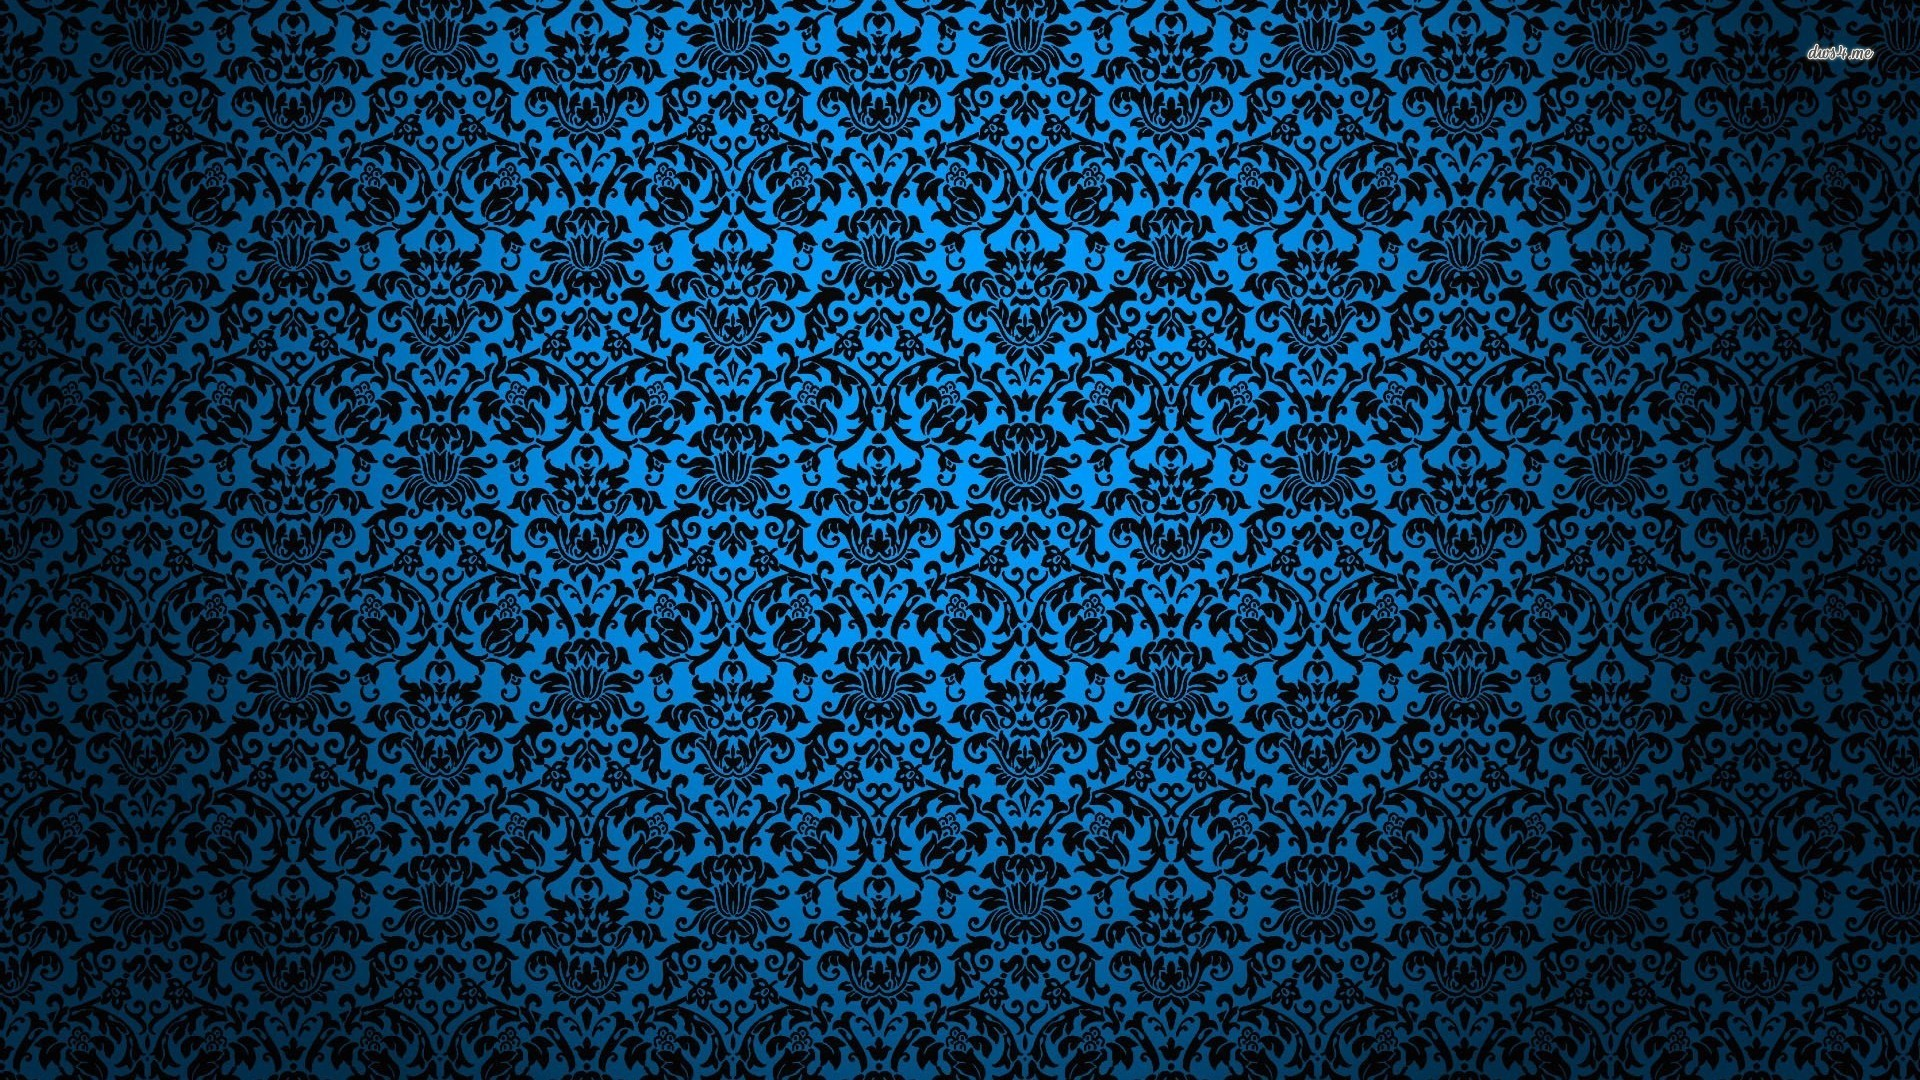 blue vintage pattern wallpaper abstract wallpapers blue vintage 1920x1080